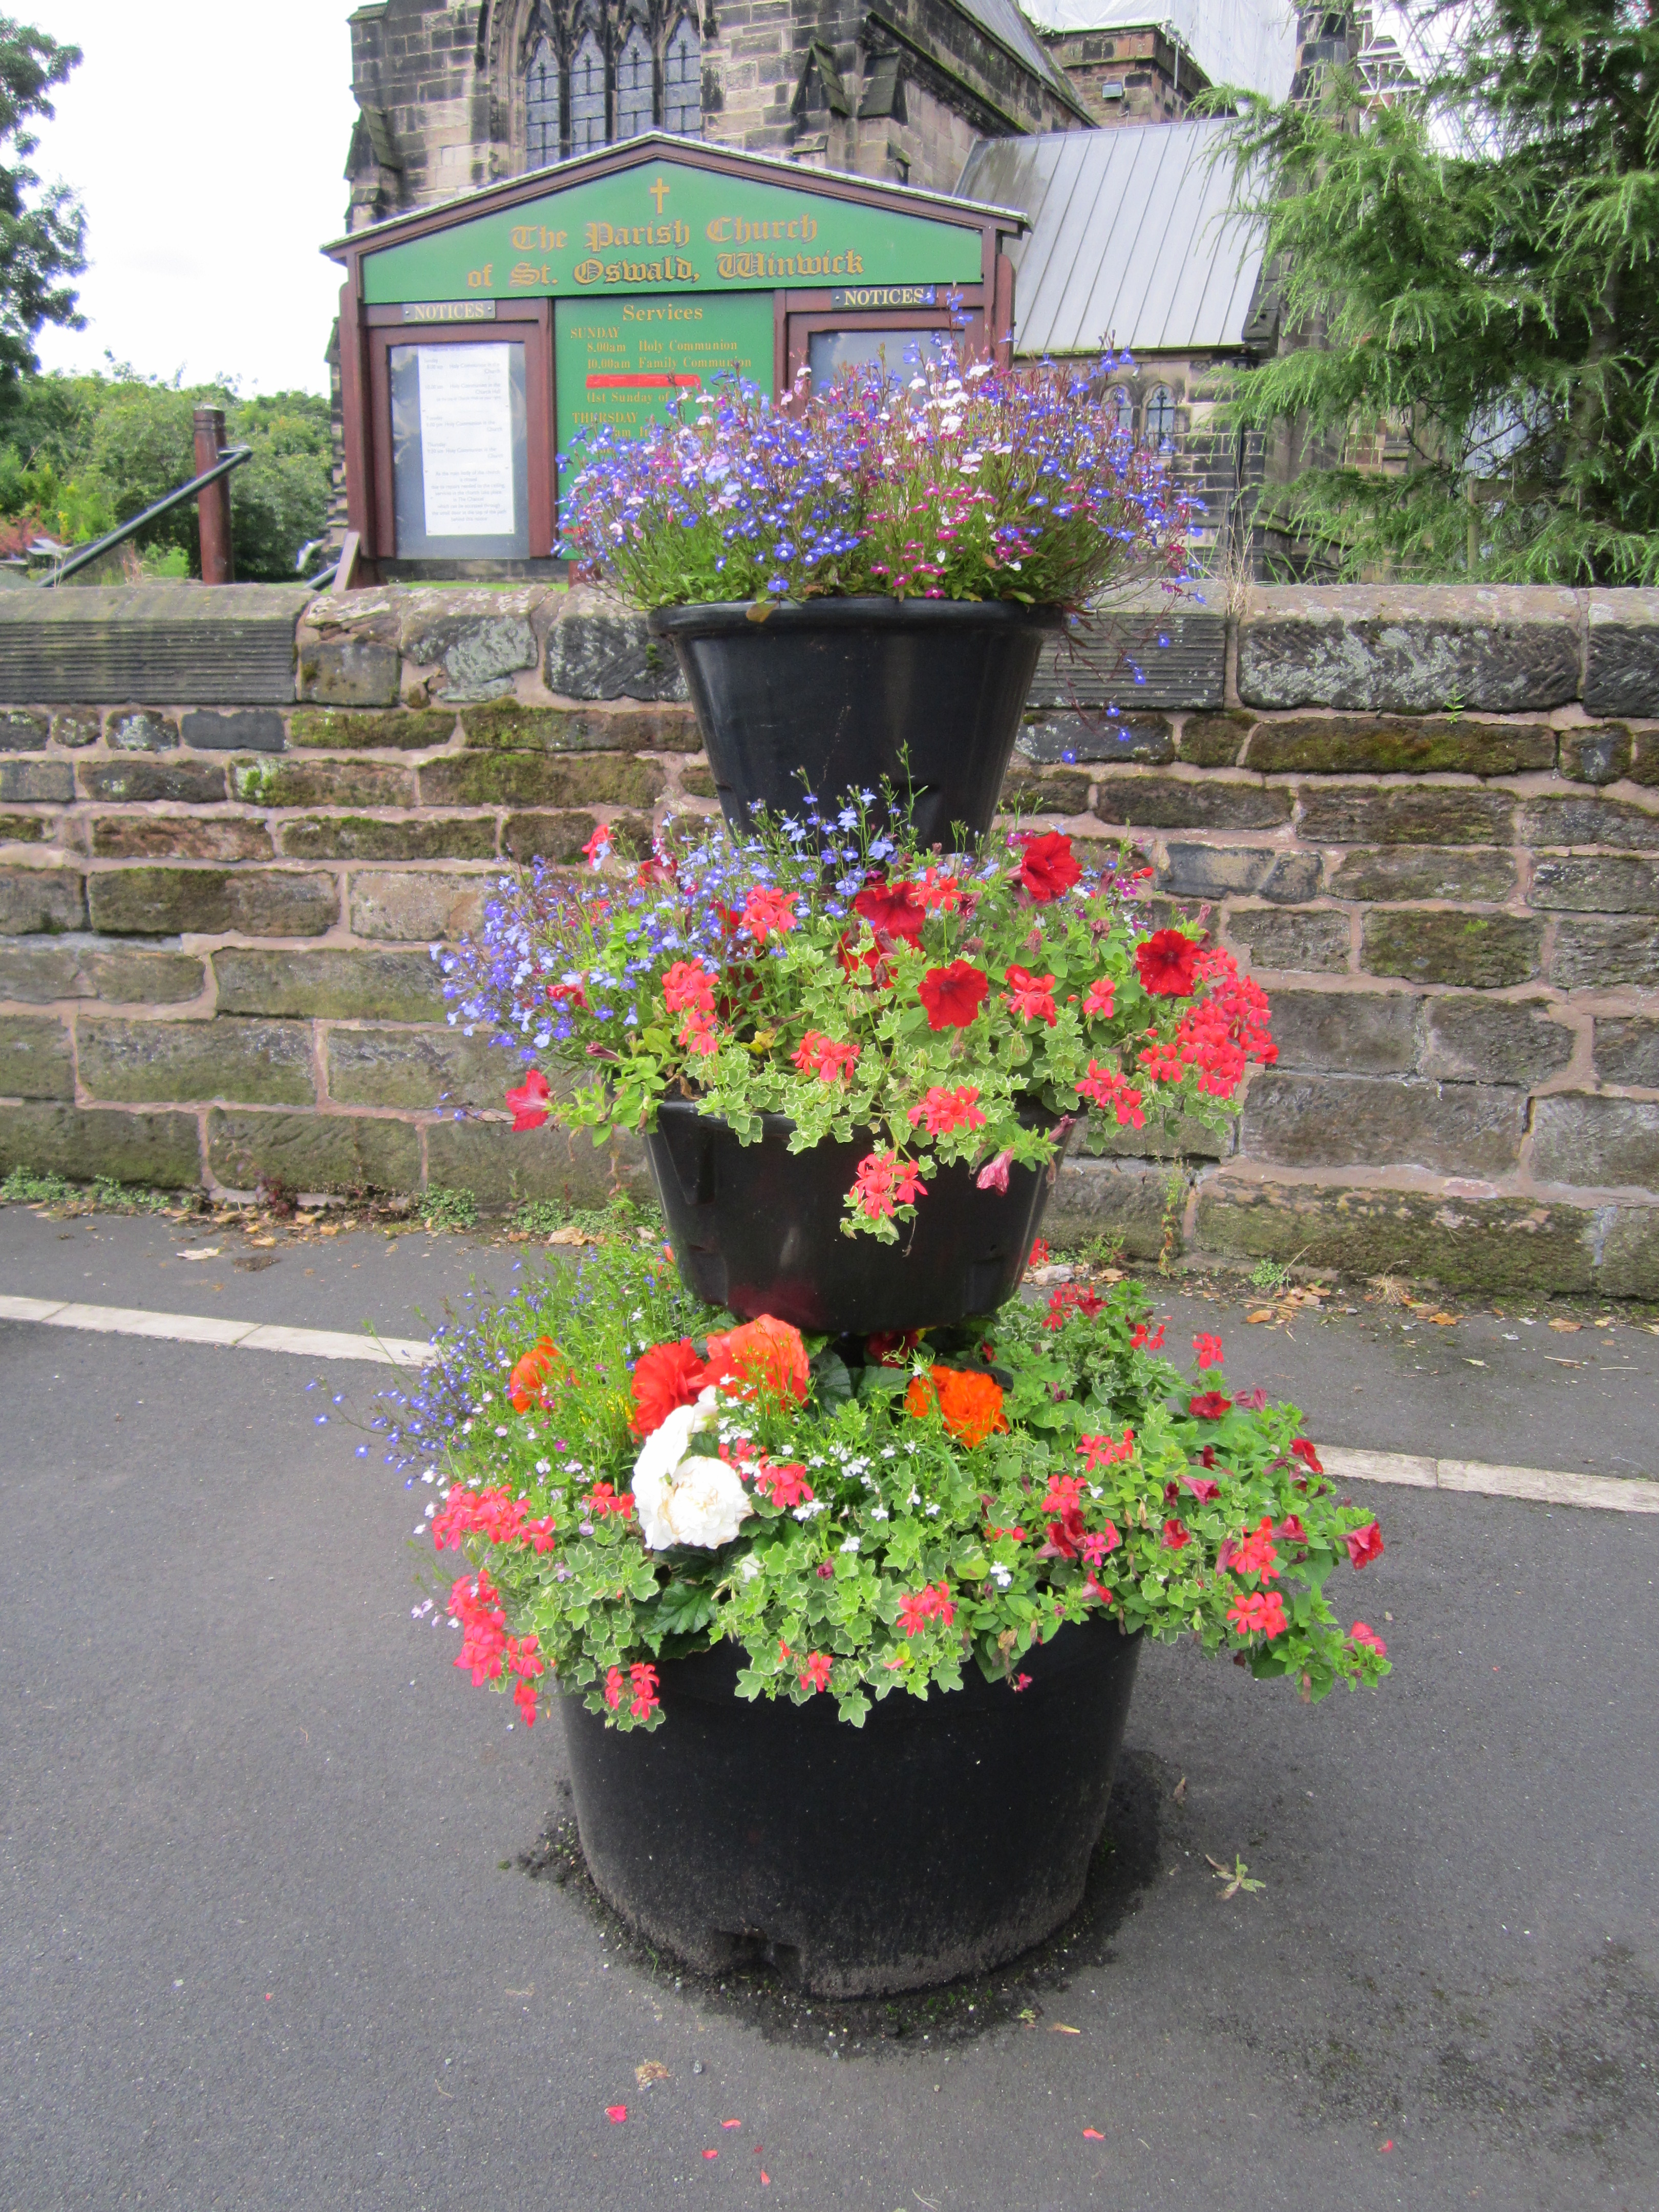 File:Planters at Winwick, Cheshire (29).JPG - Wikimedia Commons on garden yard spinners, garden pools, garden pots, garden plants, garden steps, garden walls, garden ideas, garden trellis, garden vegetable garden, garden arbors, garden seeders, garden beds, garden accessories, garden tools, garden bench, garden boxes, garden patios, garden urns, garden art, garden shrubs,